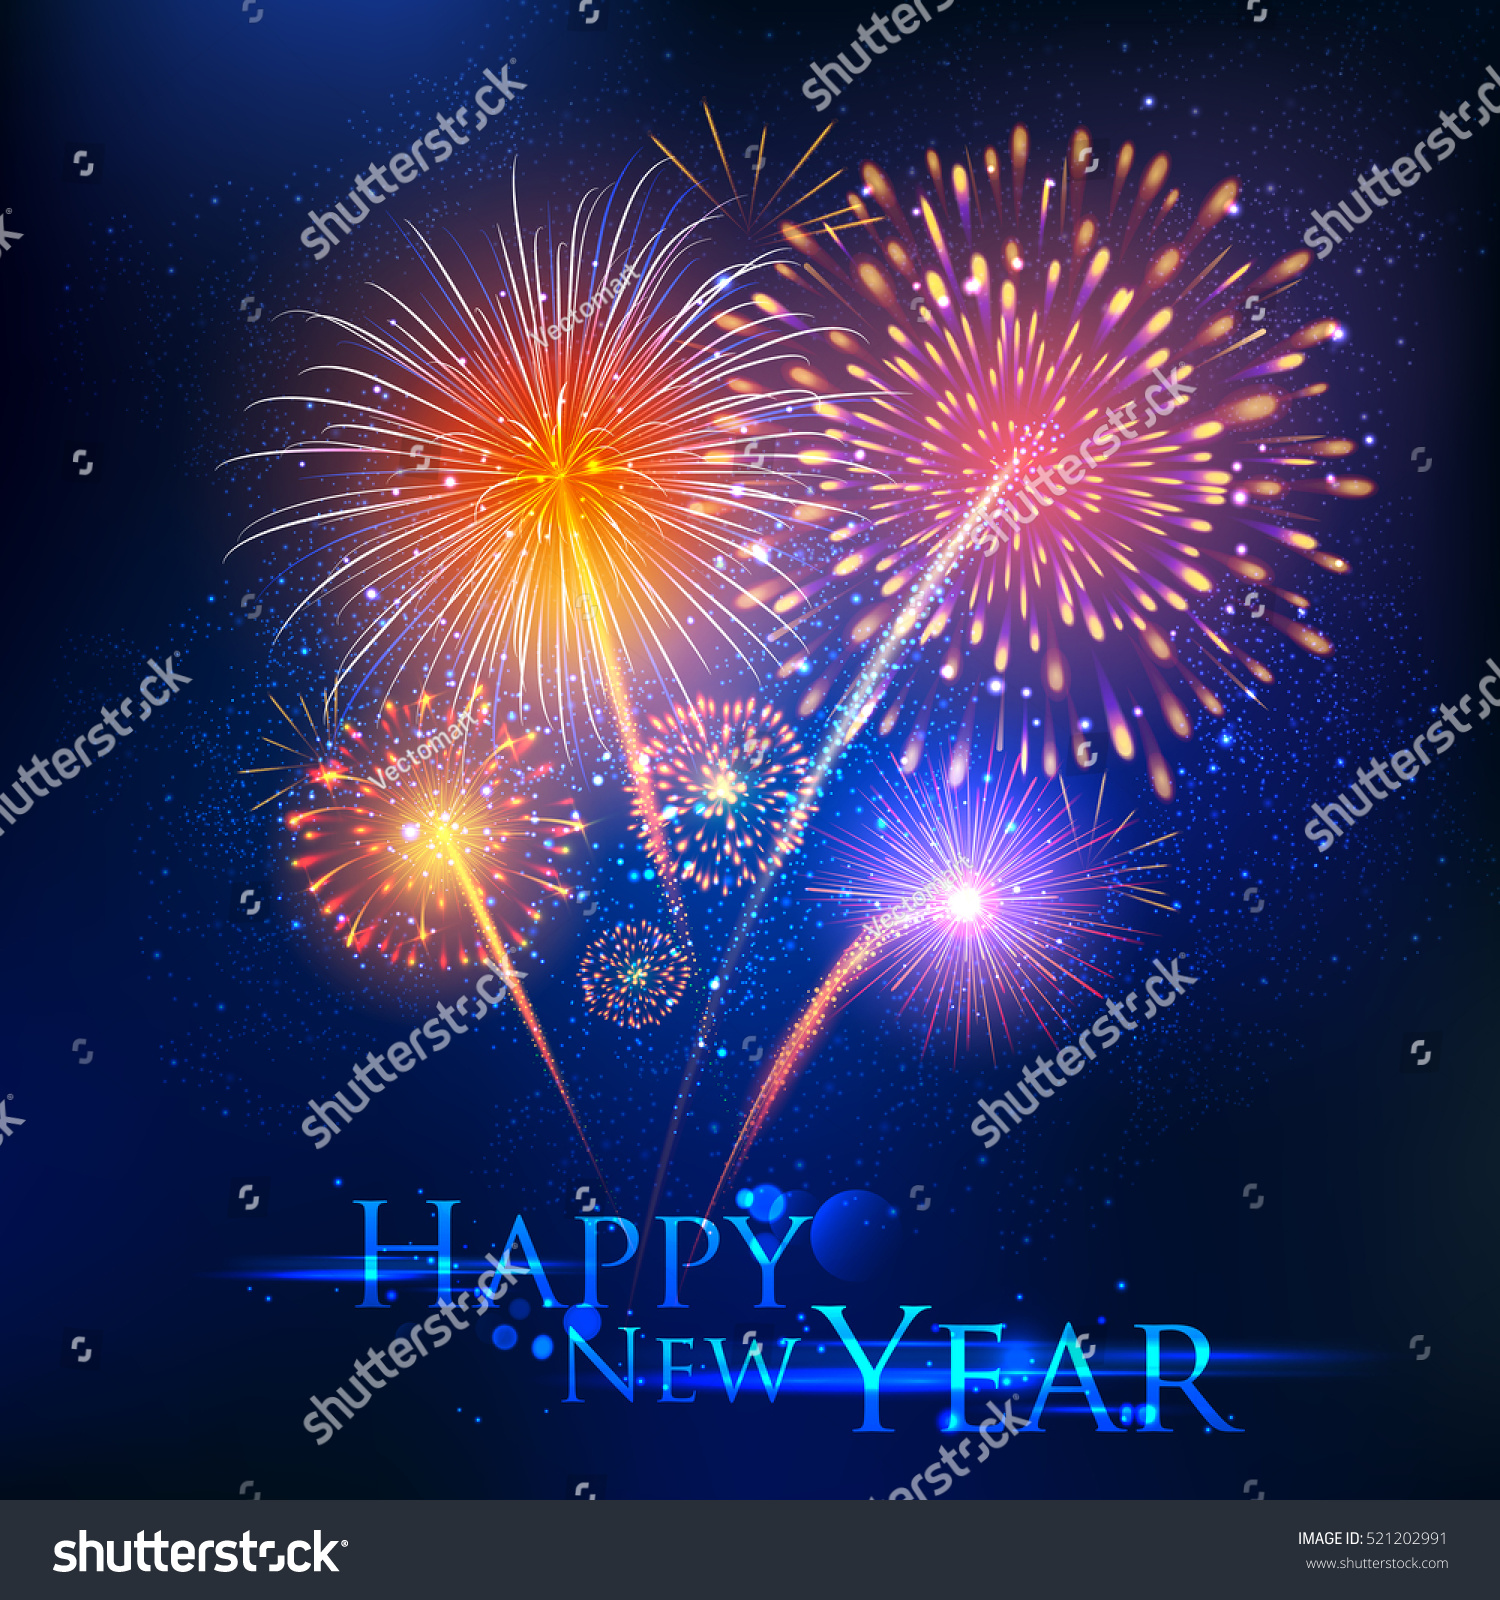 illustration of happy new year celebration abstract starburst seasons greetings background with firework